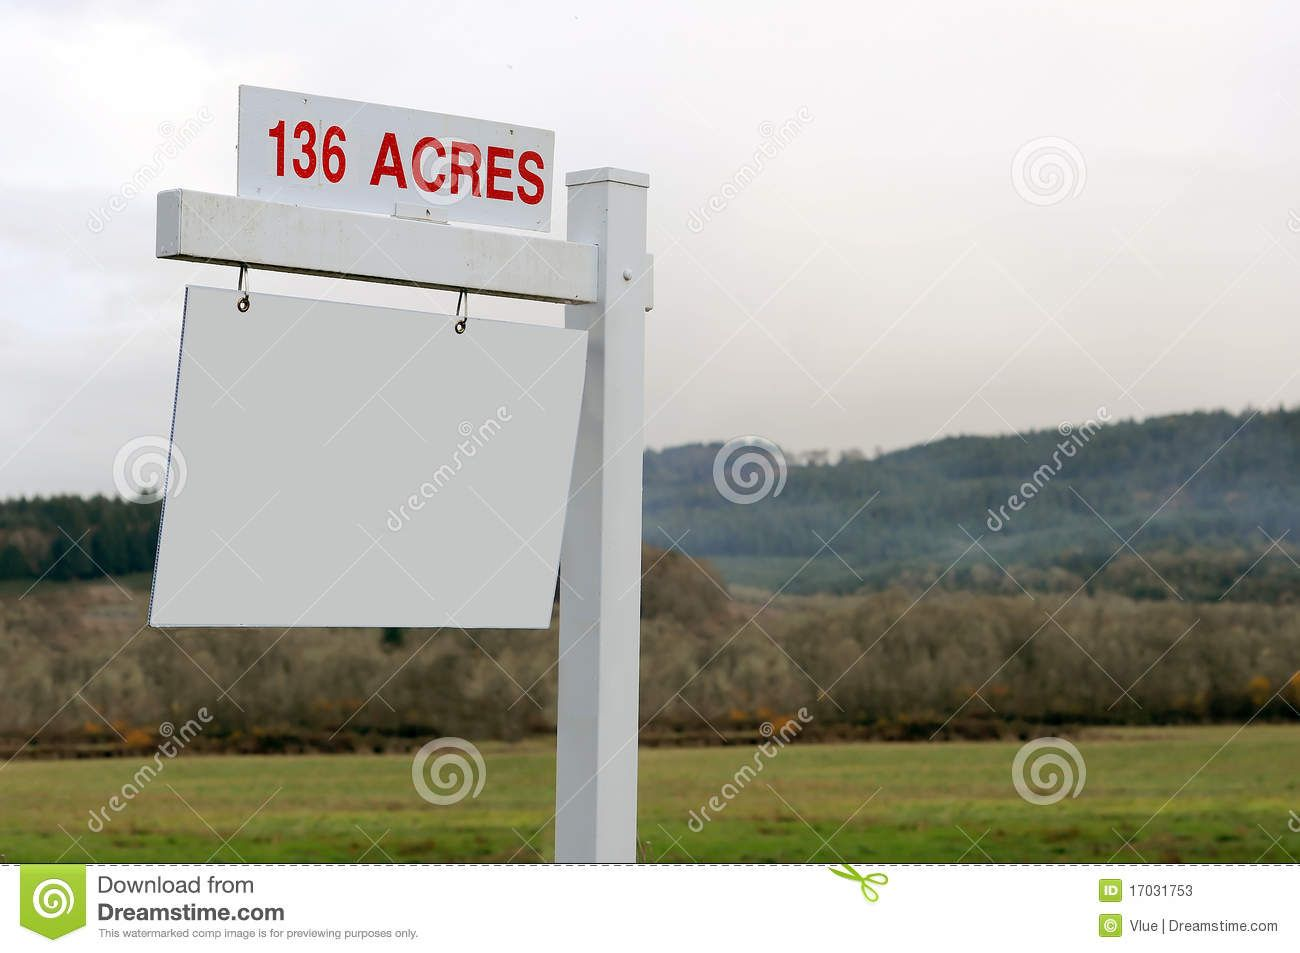 acres of land - Google Search